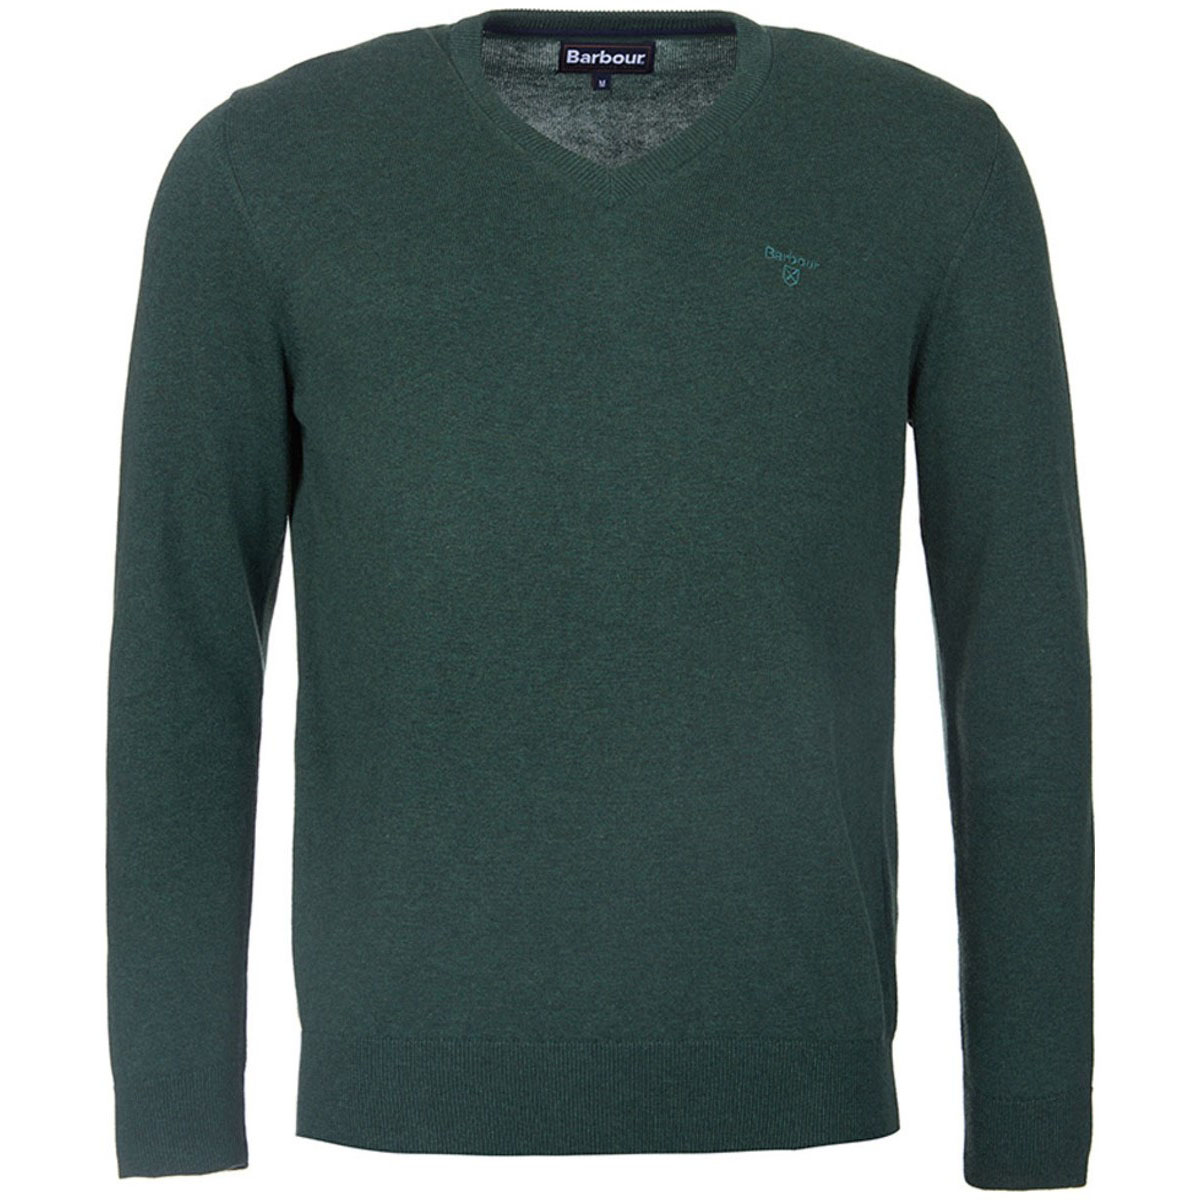 Pima Cotton V Neck Racing Green Barbour Lifestyle: From the Core Essentials collection